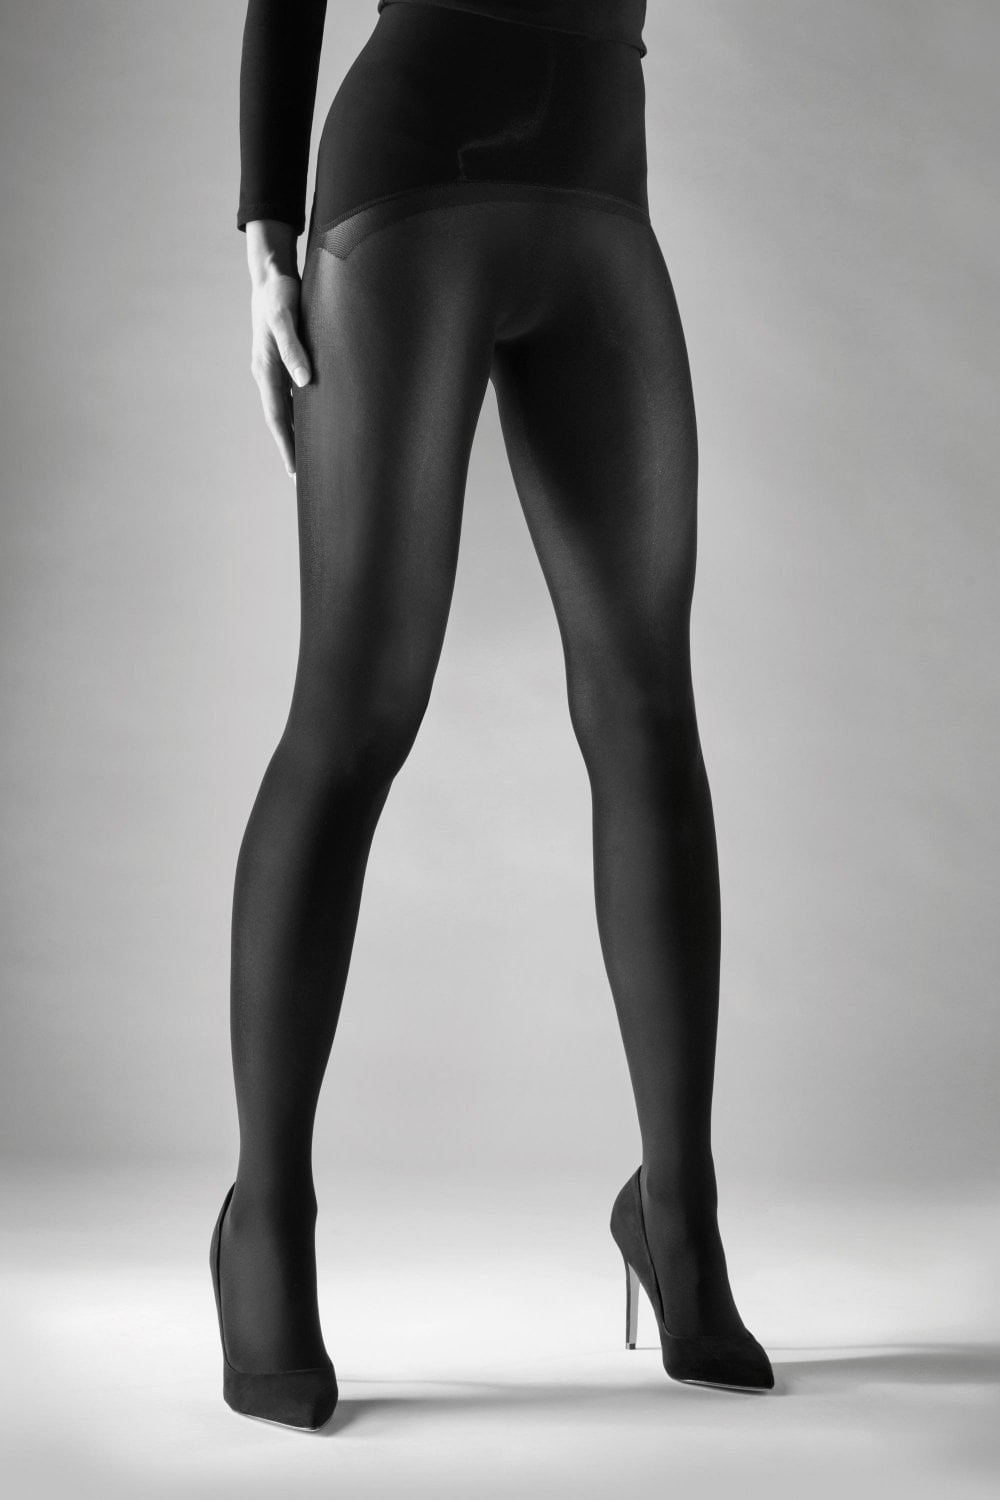 extra small size only Royal Blue Opaque Tights by Flirt 50 Denier